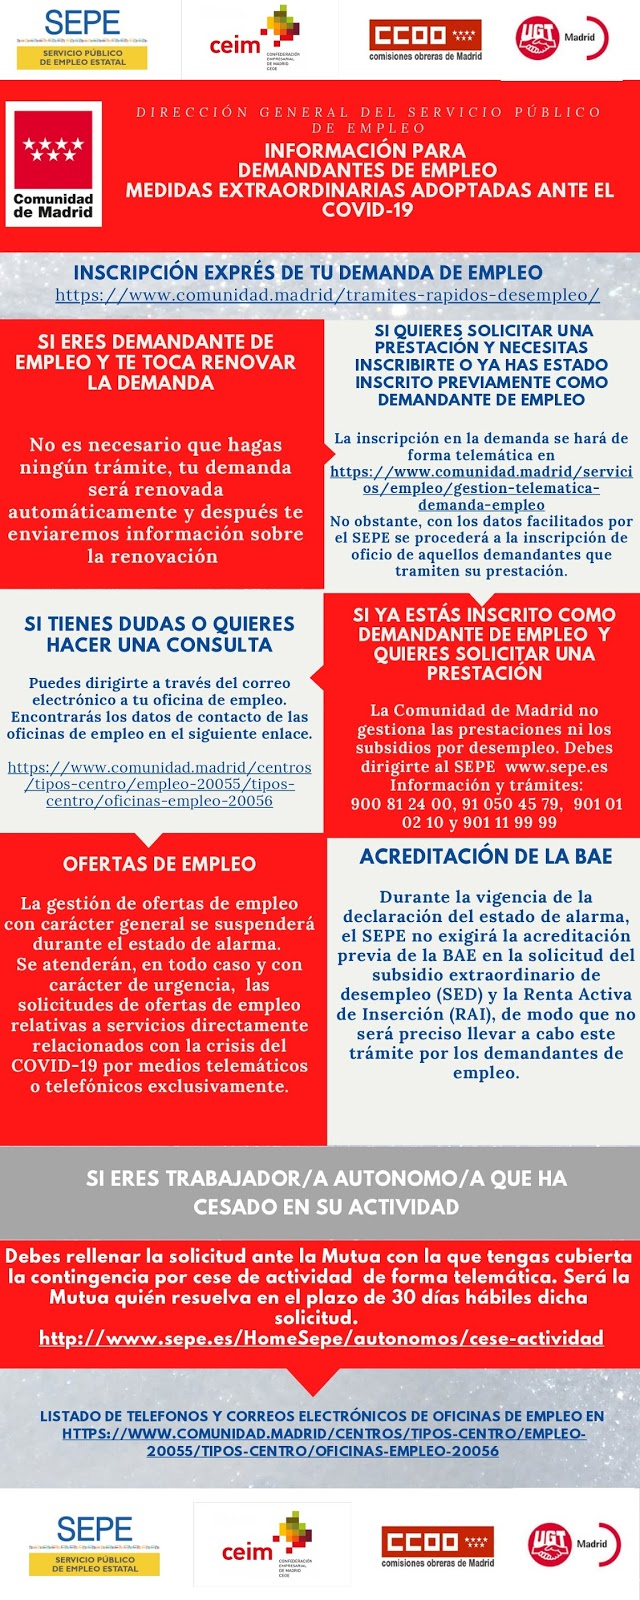 https://www.comunidad.madrid/sites/default/files/doc/empleo/resumen_informacion_empleo.pdf